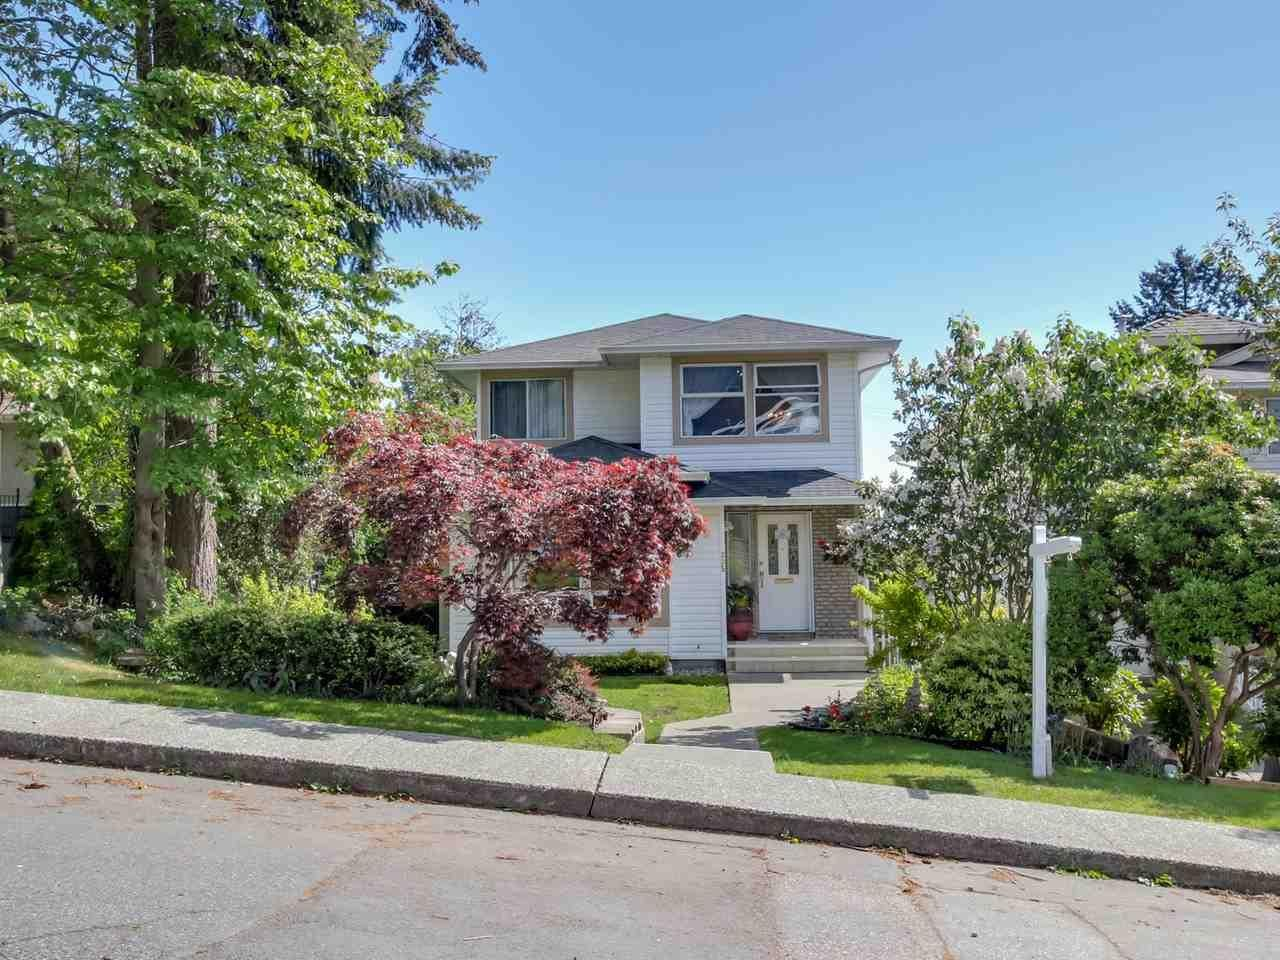 R2070779 - 335 W 27TH STREET, Upper Lonsdale, North Vancouver, BC - House/Single Family